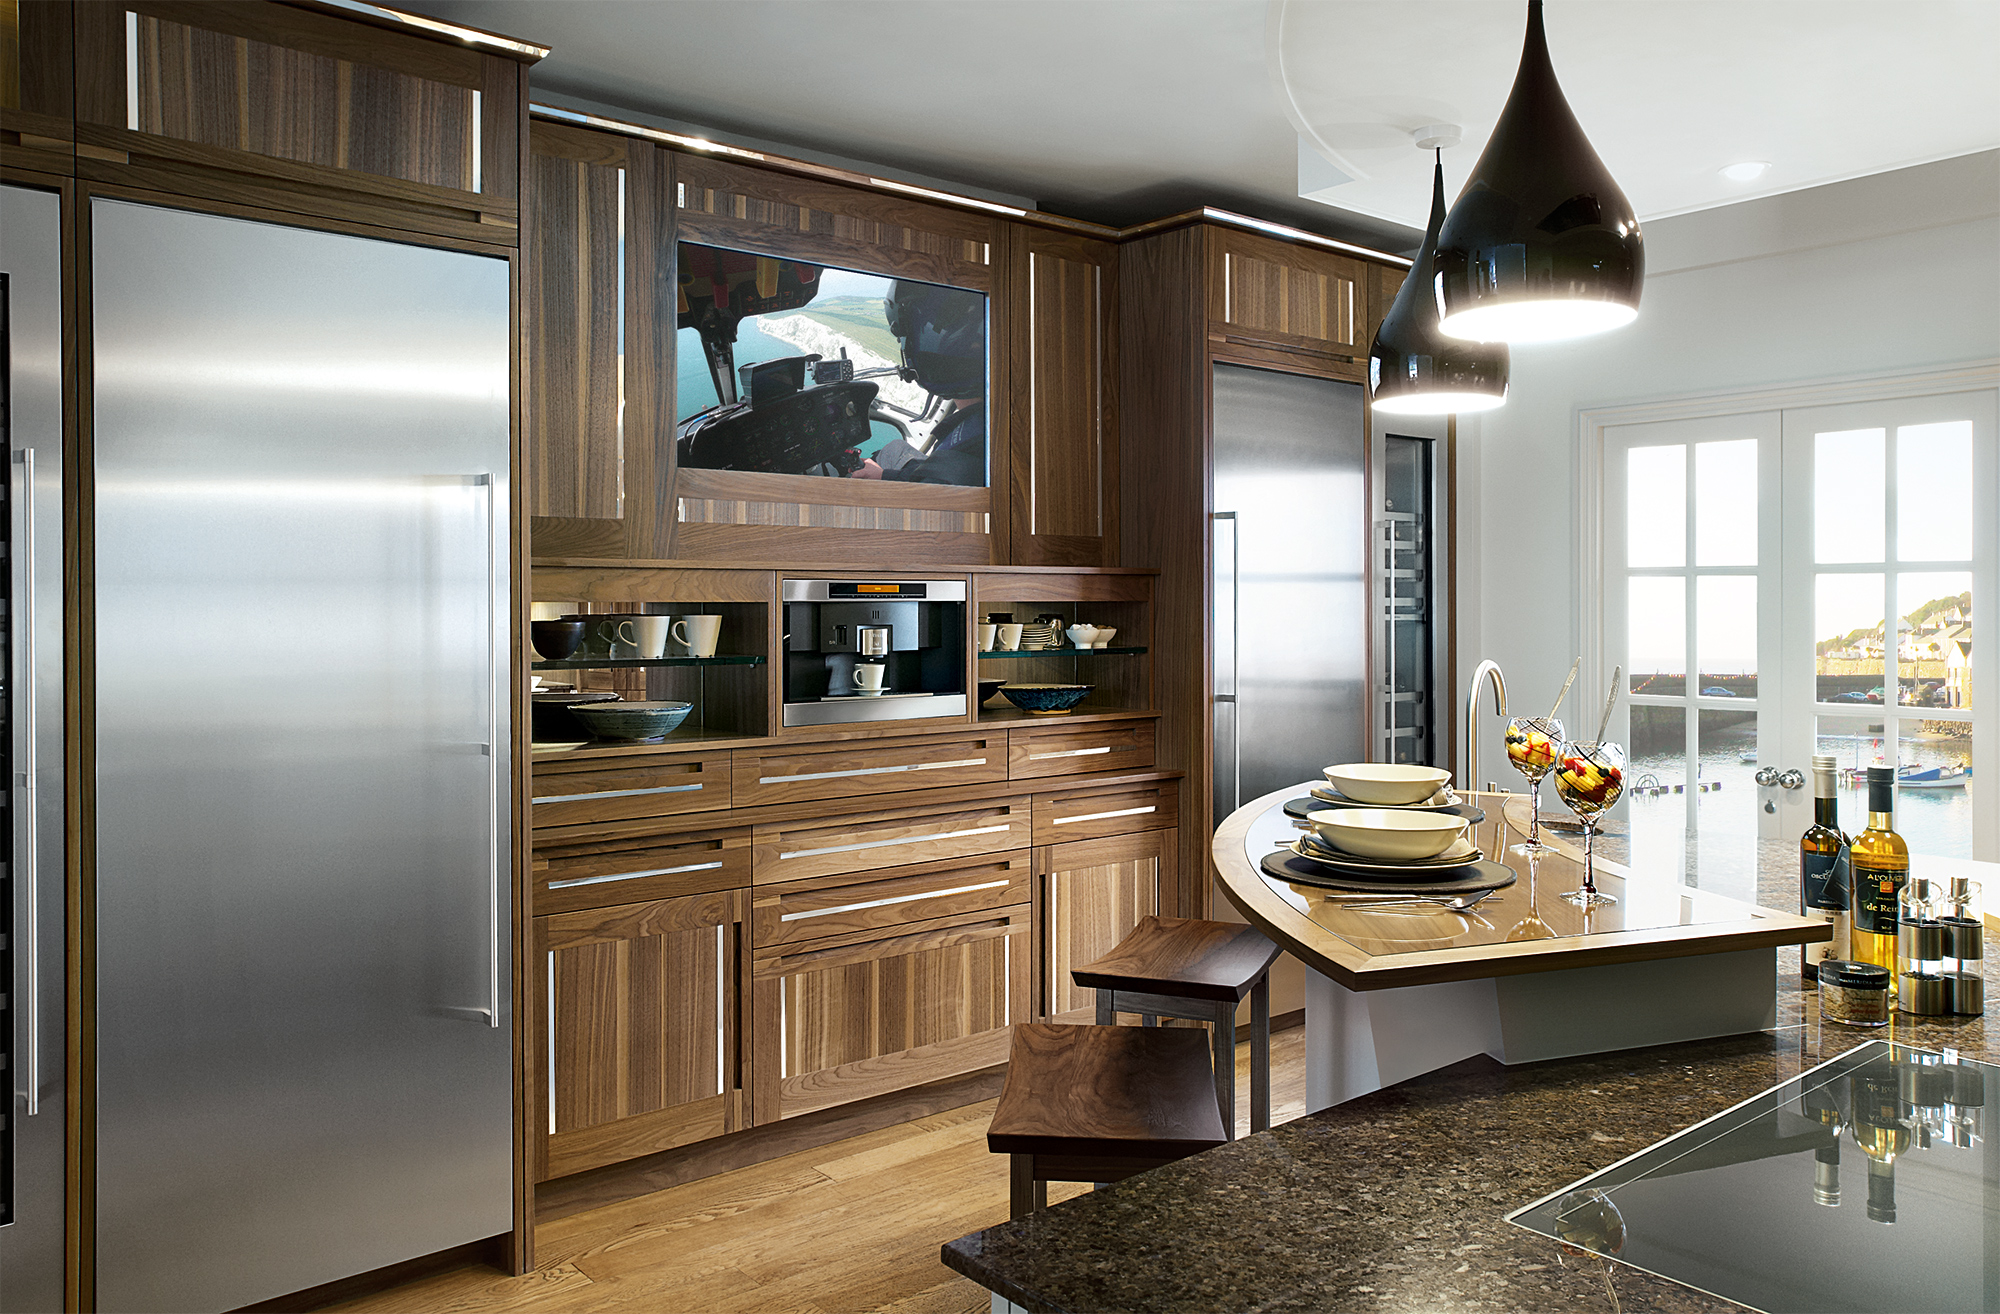 Luxury bespoke kitchens newlyn collection mark wilkinson for Kitchen designs namibia